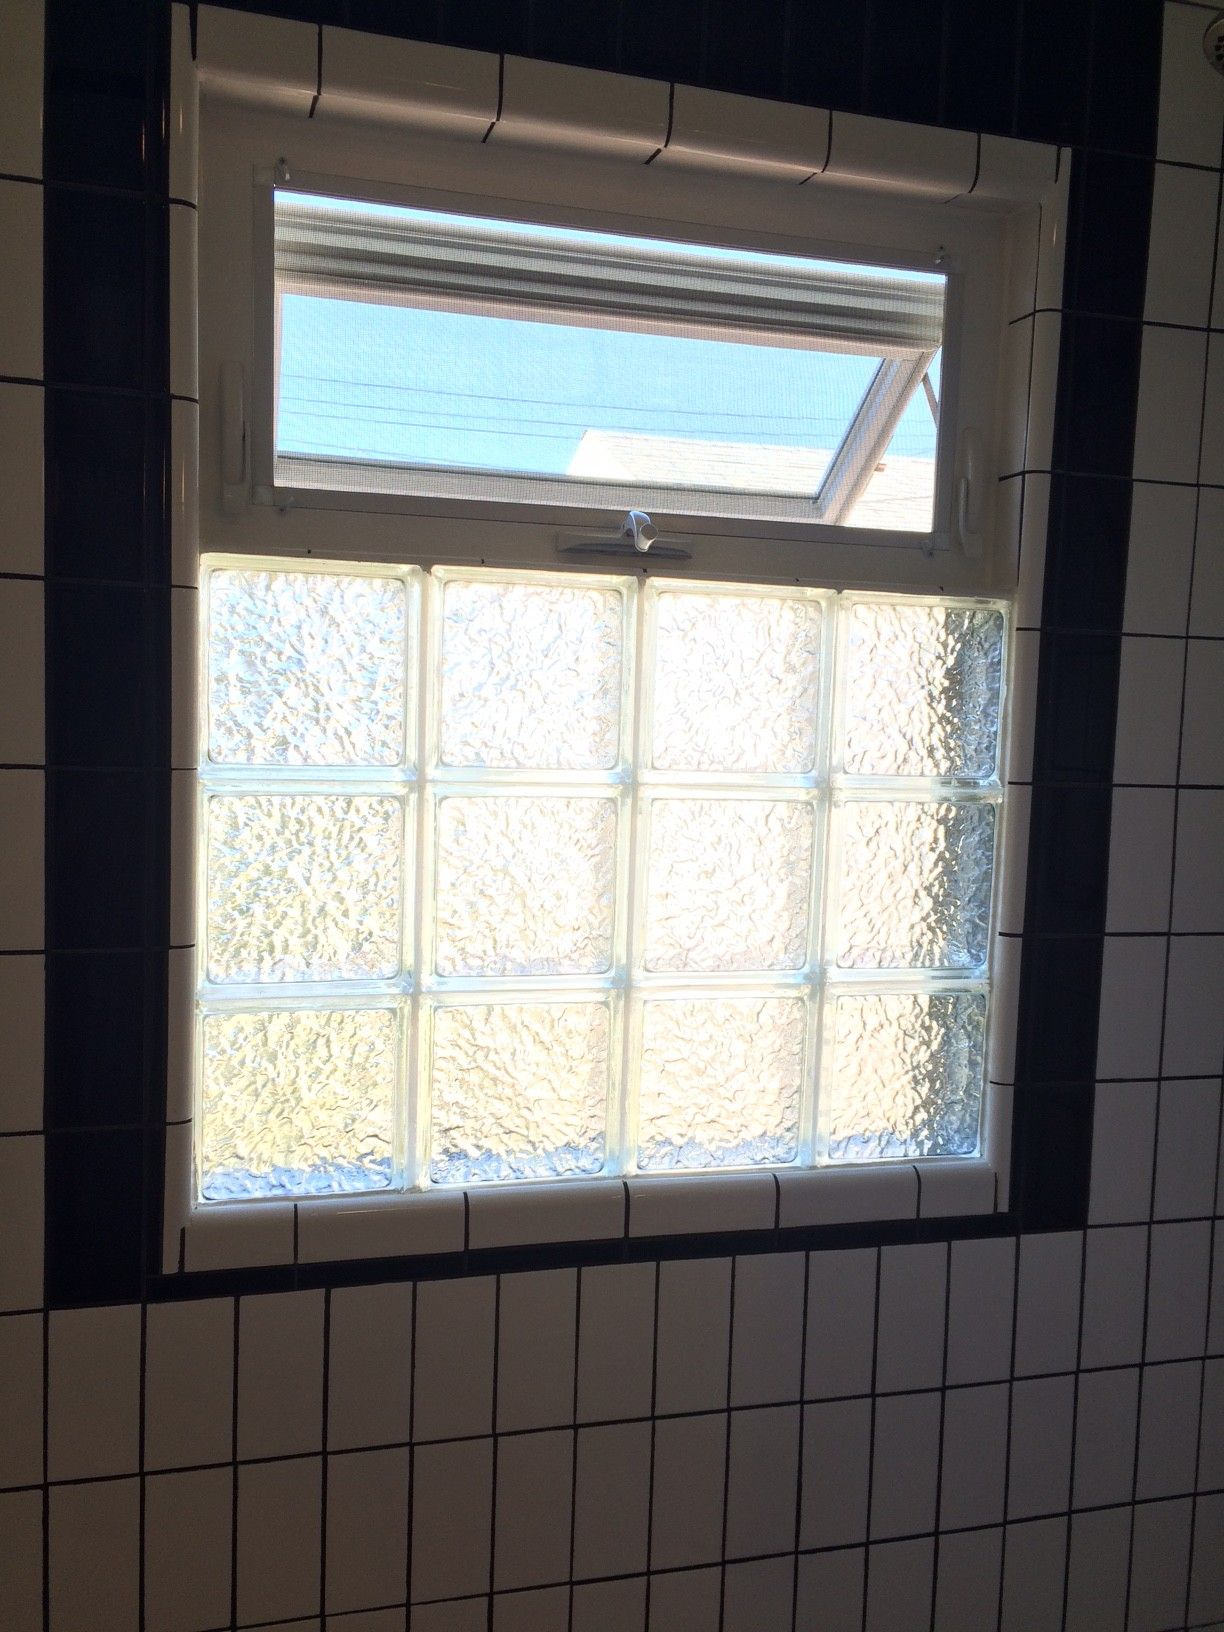 Bathroom Window Repair black and white bathroom remodel. glass block with awning window